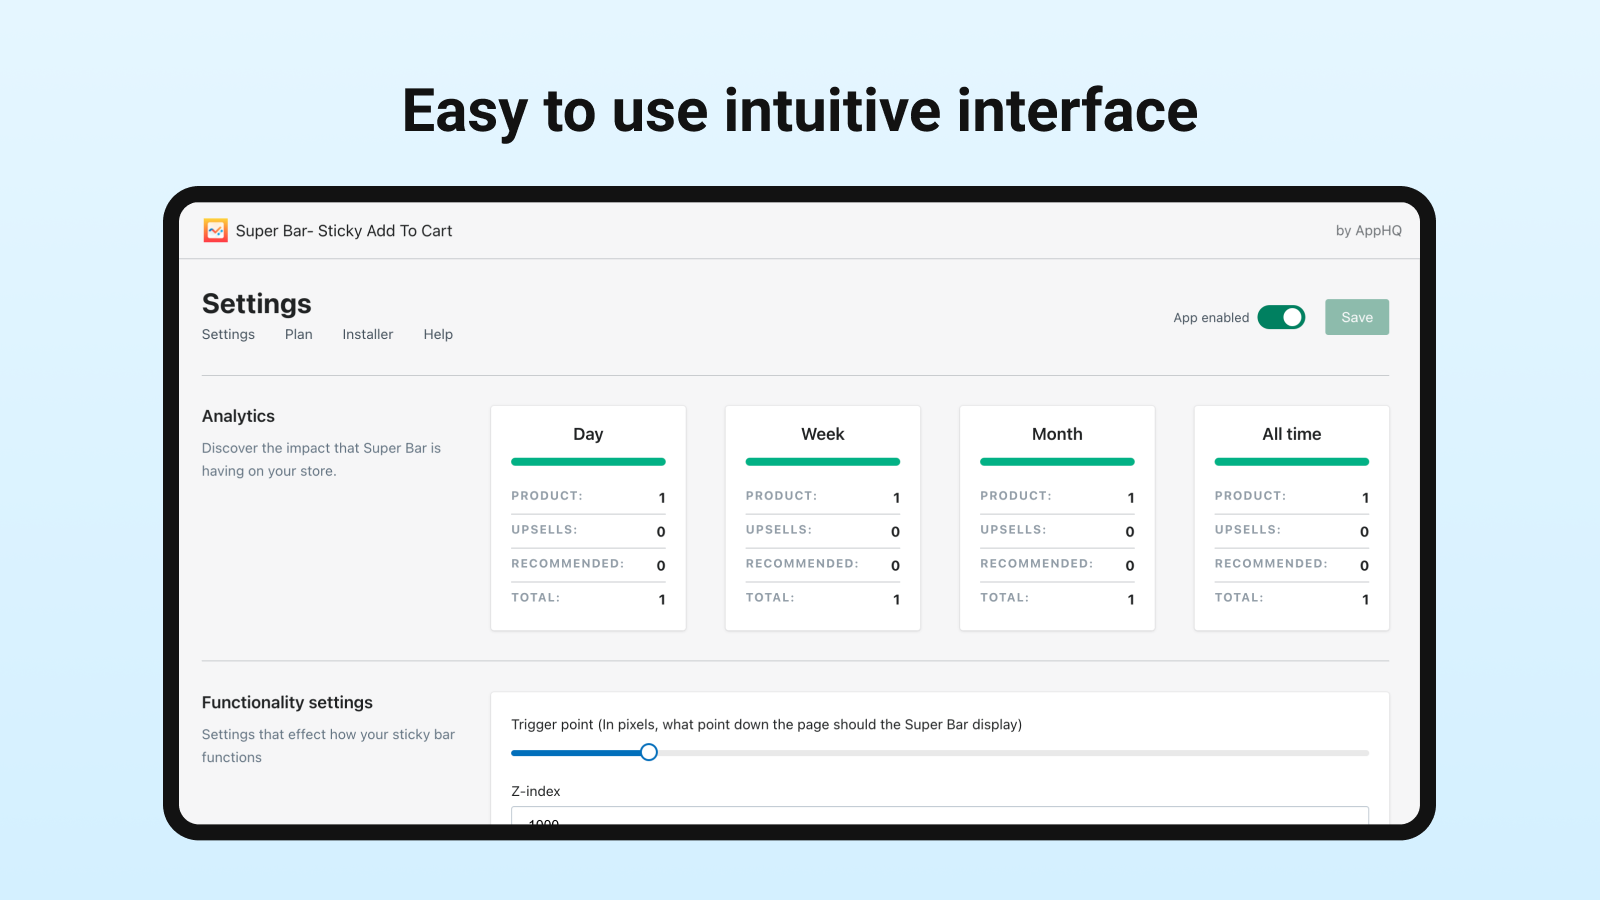 Simple intuitive interface